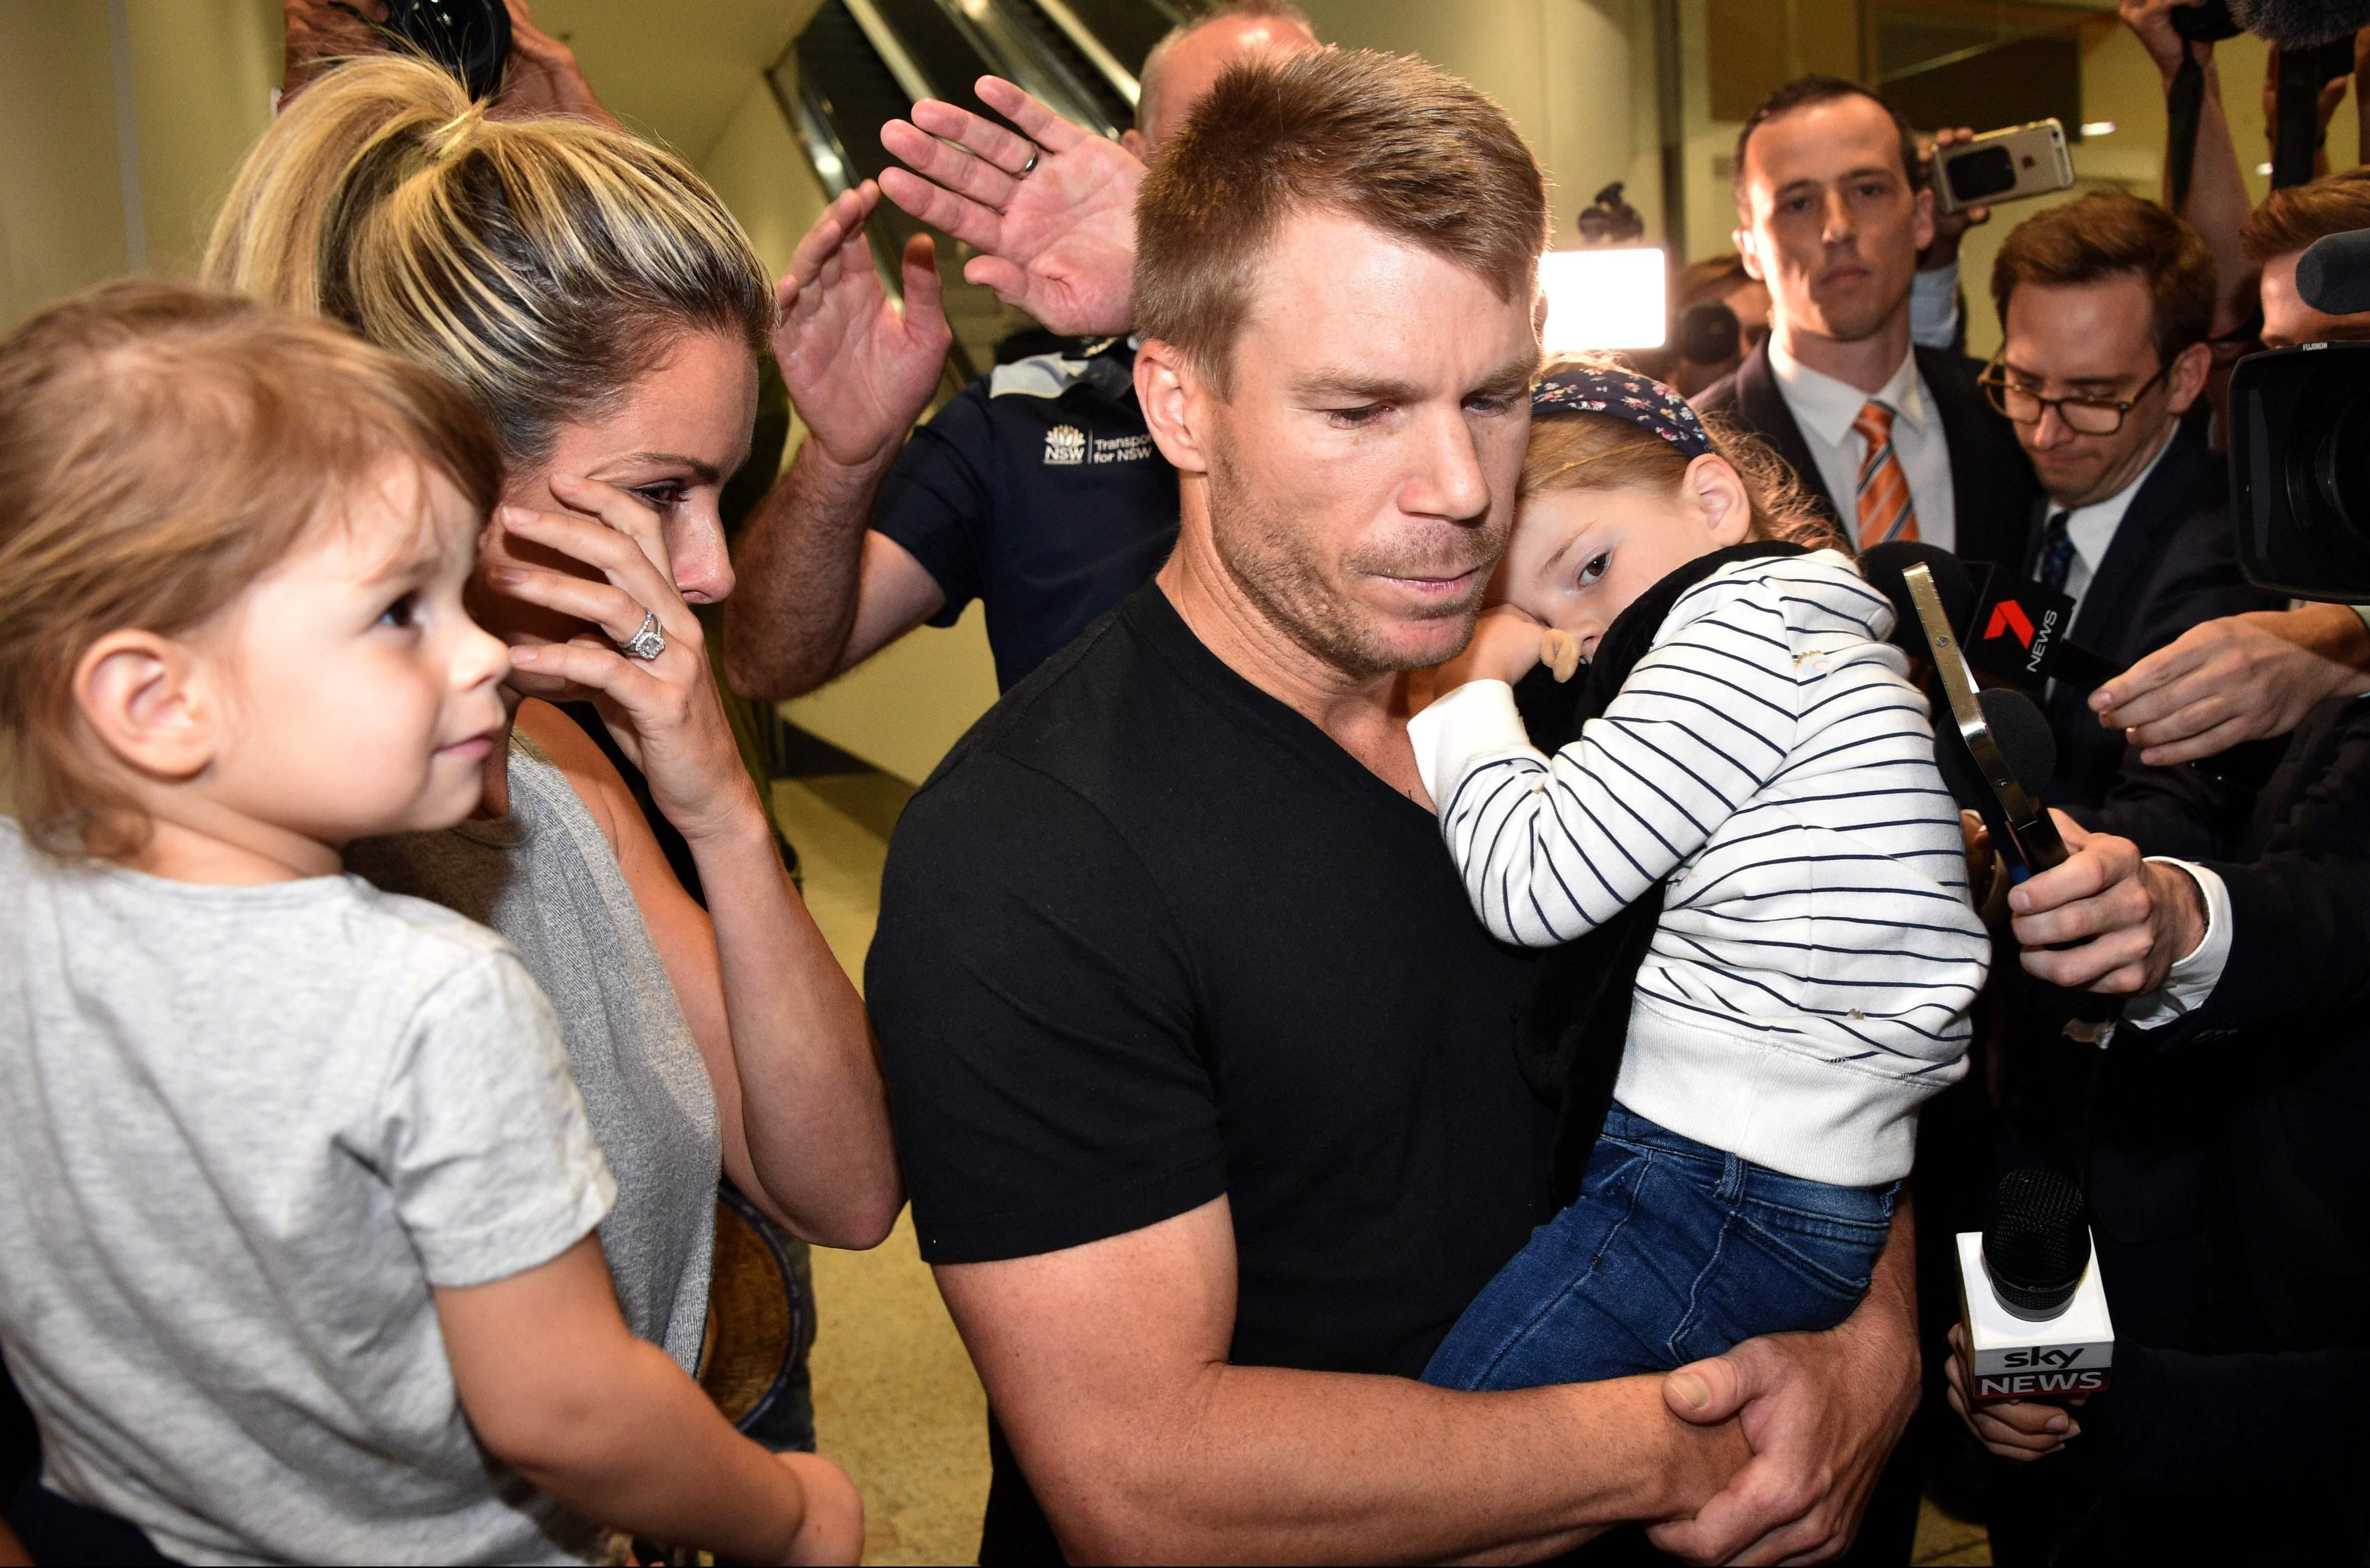 David Warner is set to face the media on Saturday